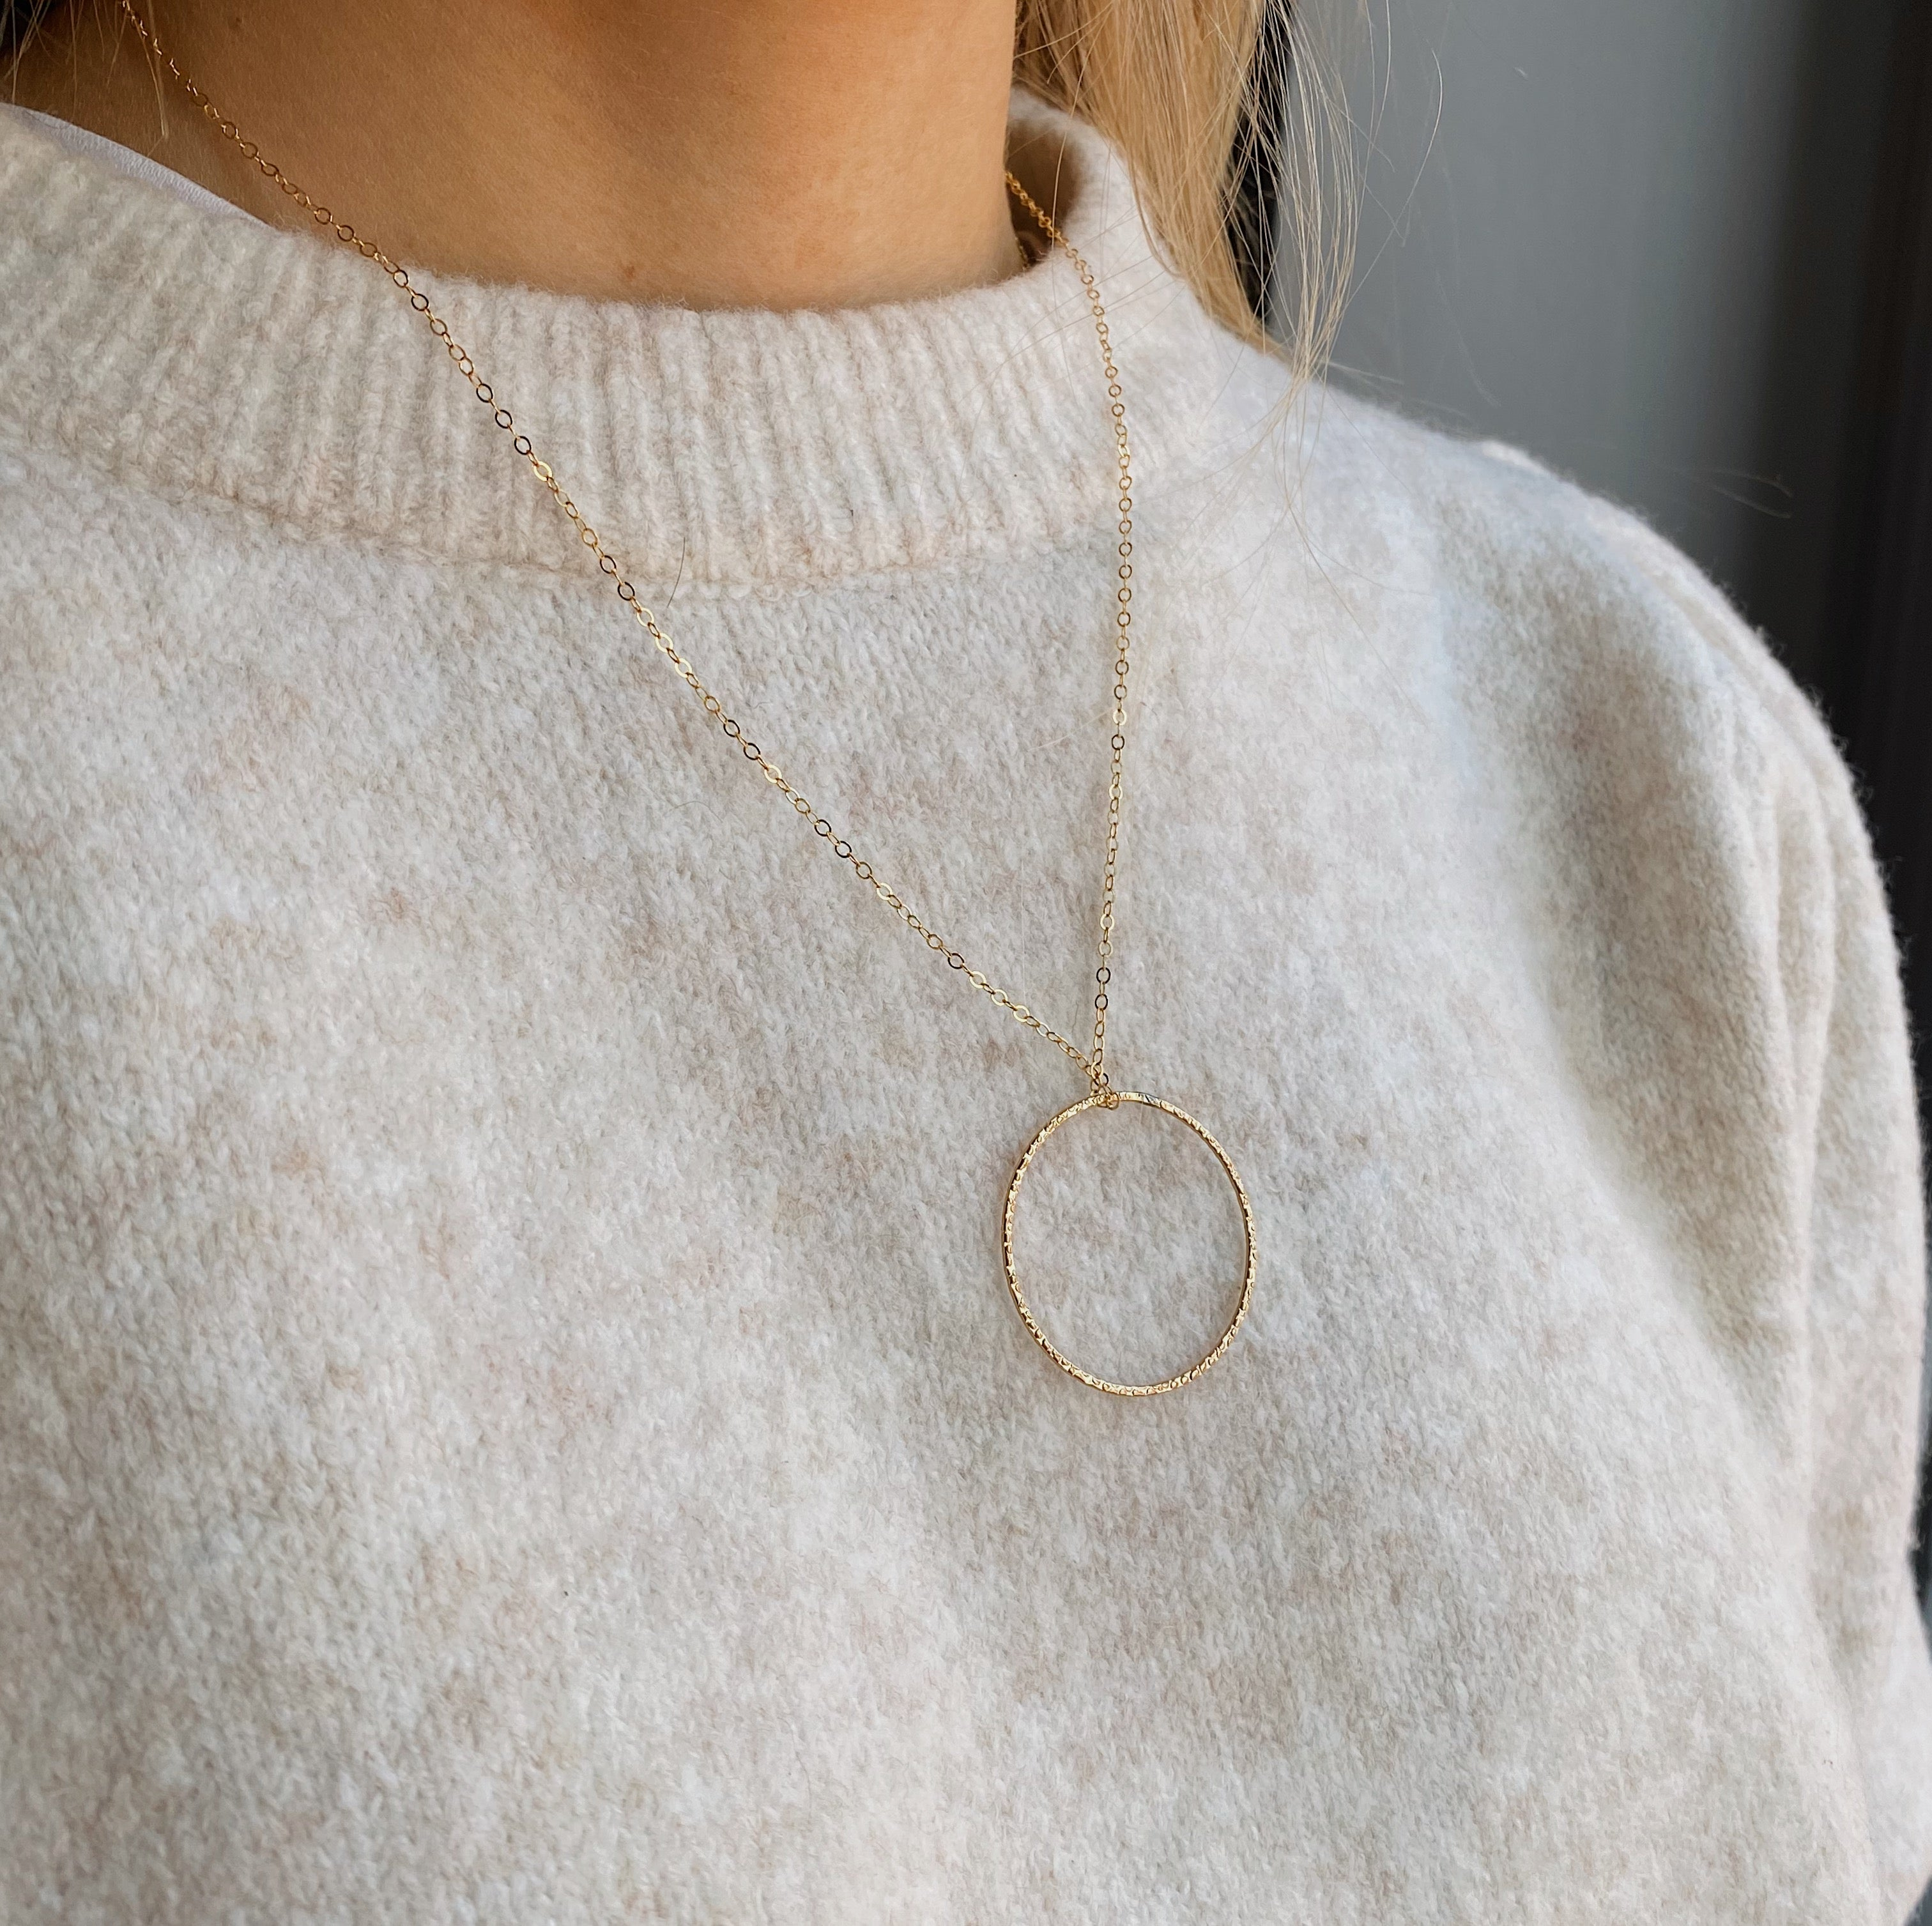 14kt Gold Filled Hammered Circle Pendant